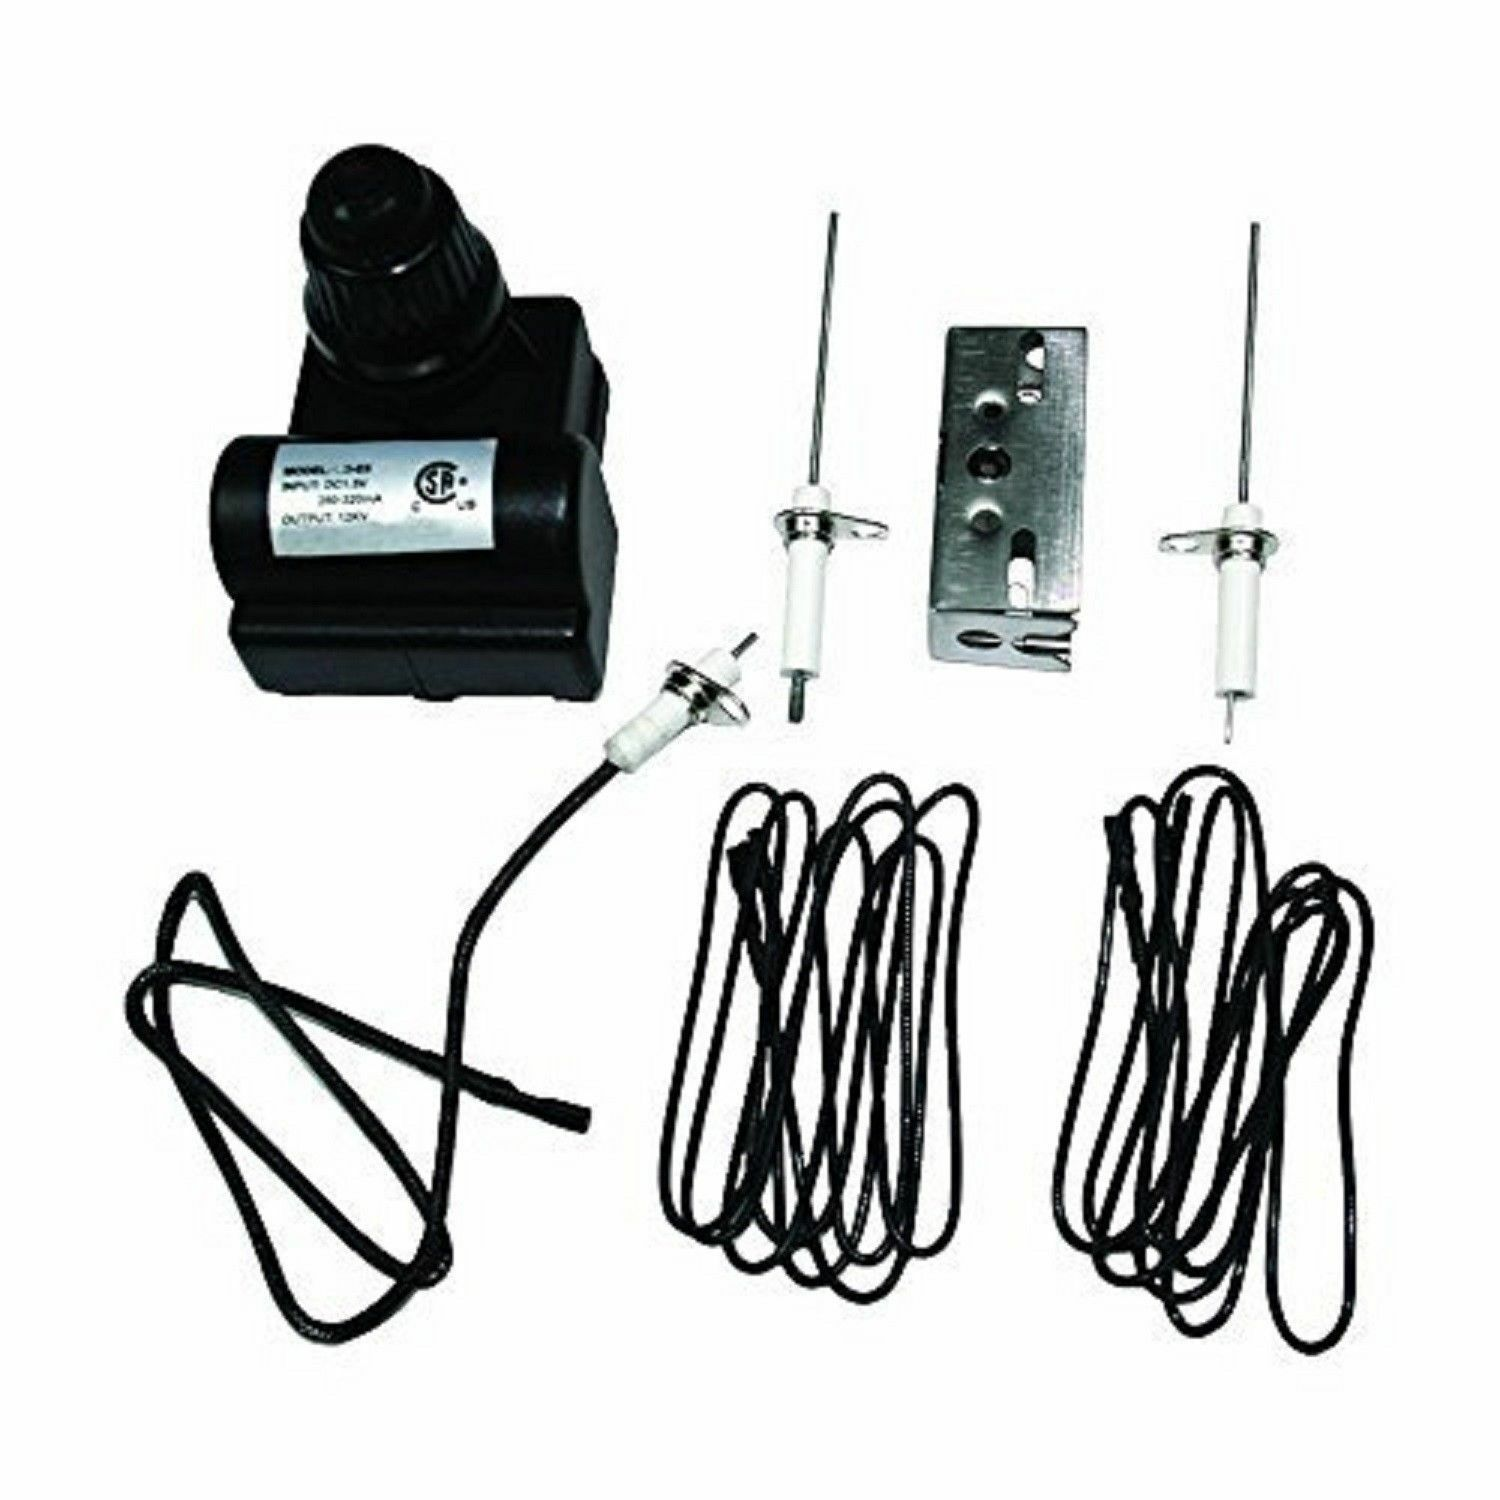 Electronic Ignitor Kit for Gas Bbq Grills from Coleman Kenmo